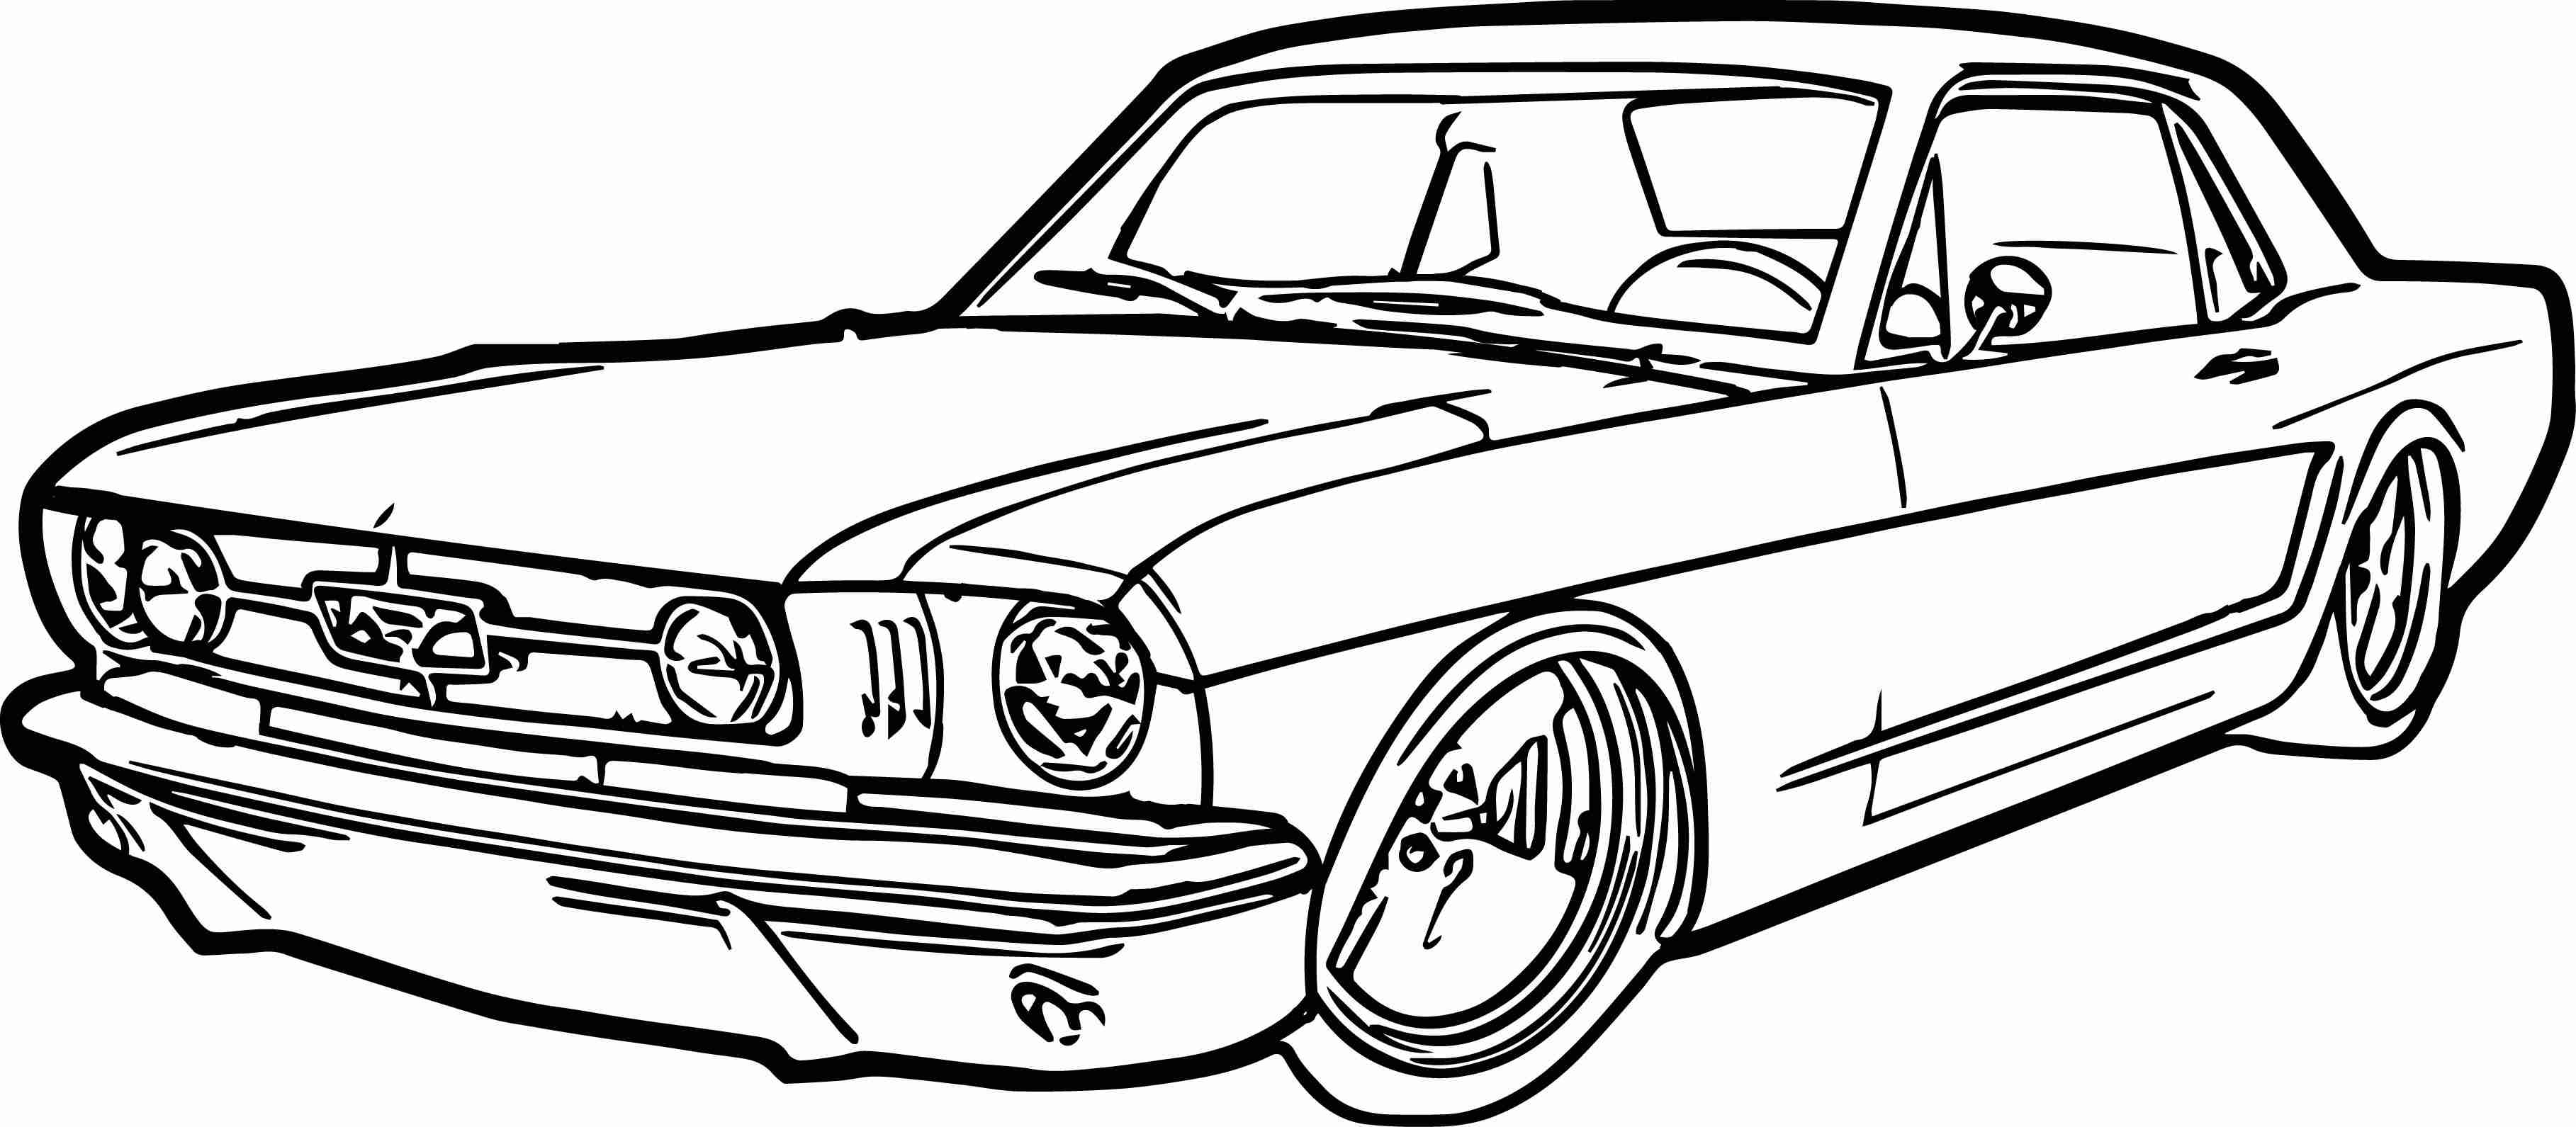 67 Mustang Coloring Pages At Getcolorings